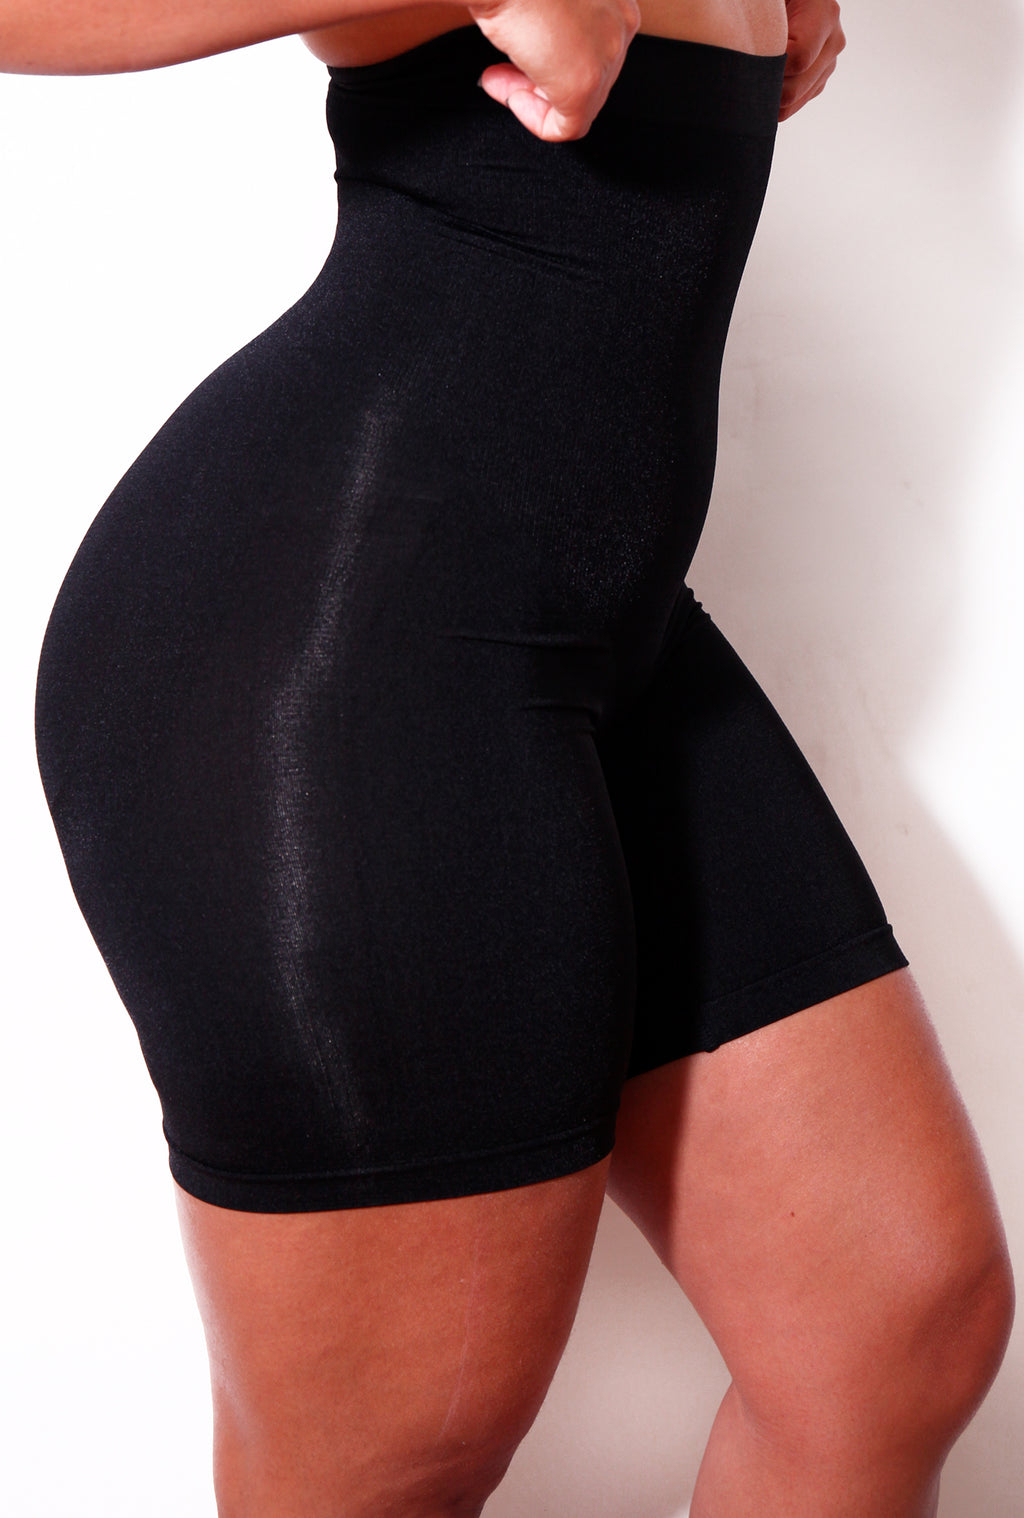 The High Waist Babe Shaper (2 Colors) - Babes And Felines | Specializing in Fashionable Staple Pieces for Every Shape and Size (11728265108)